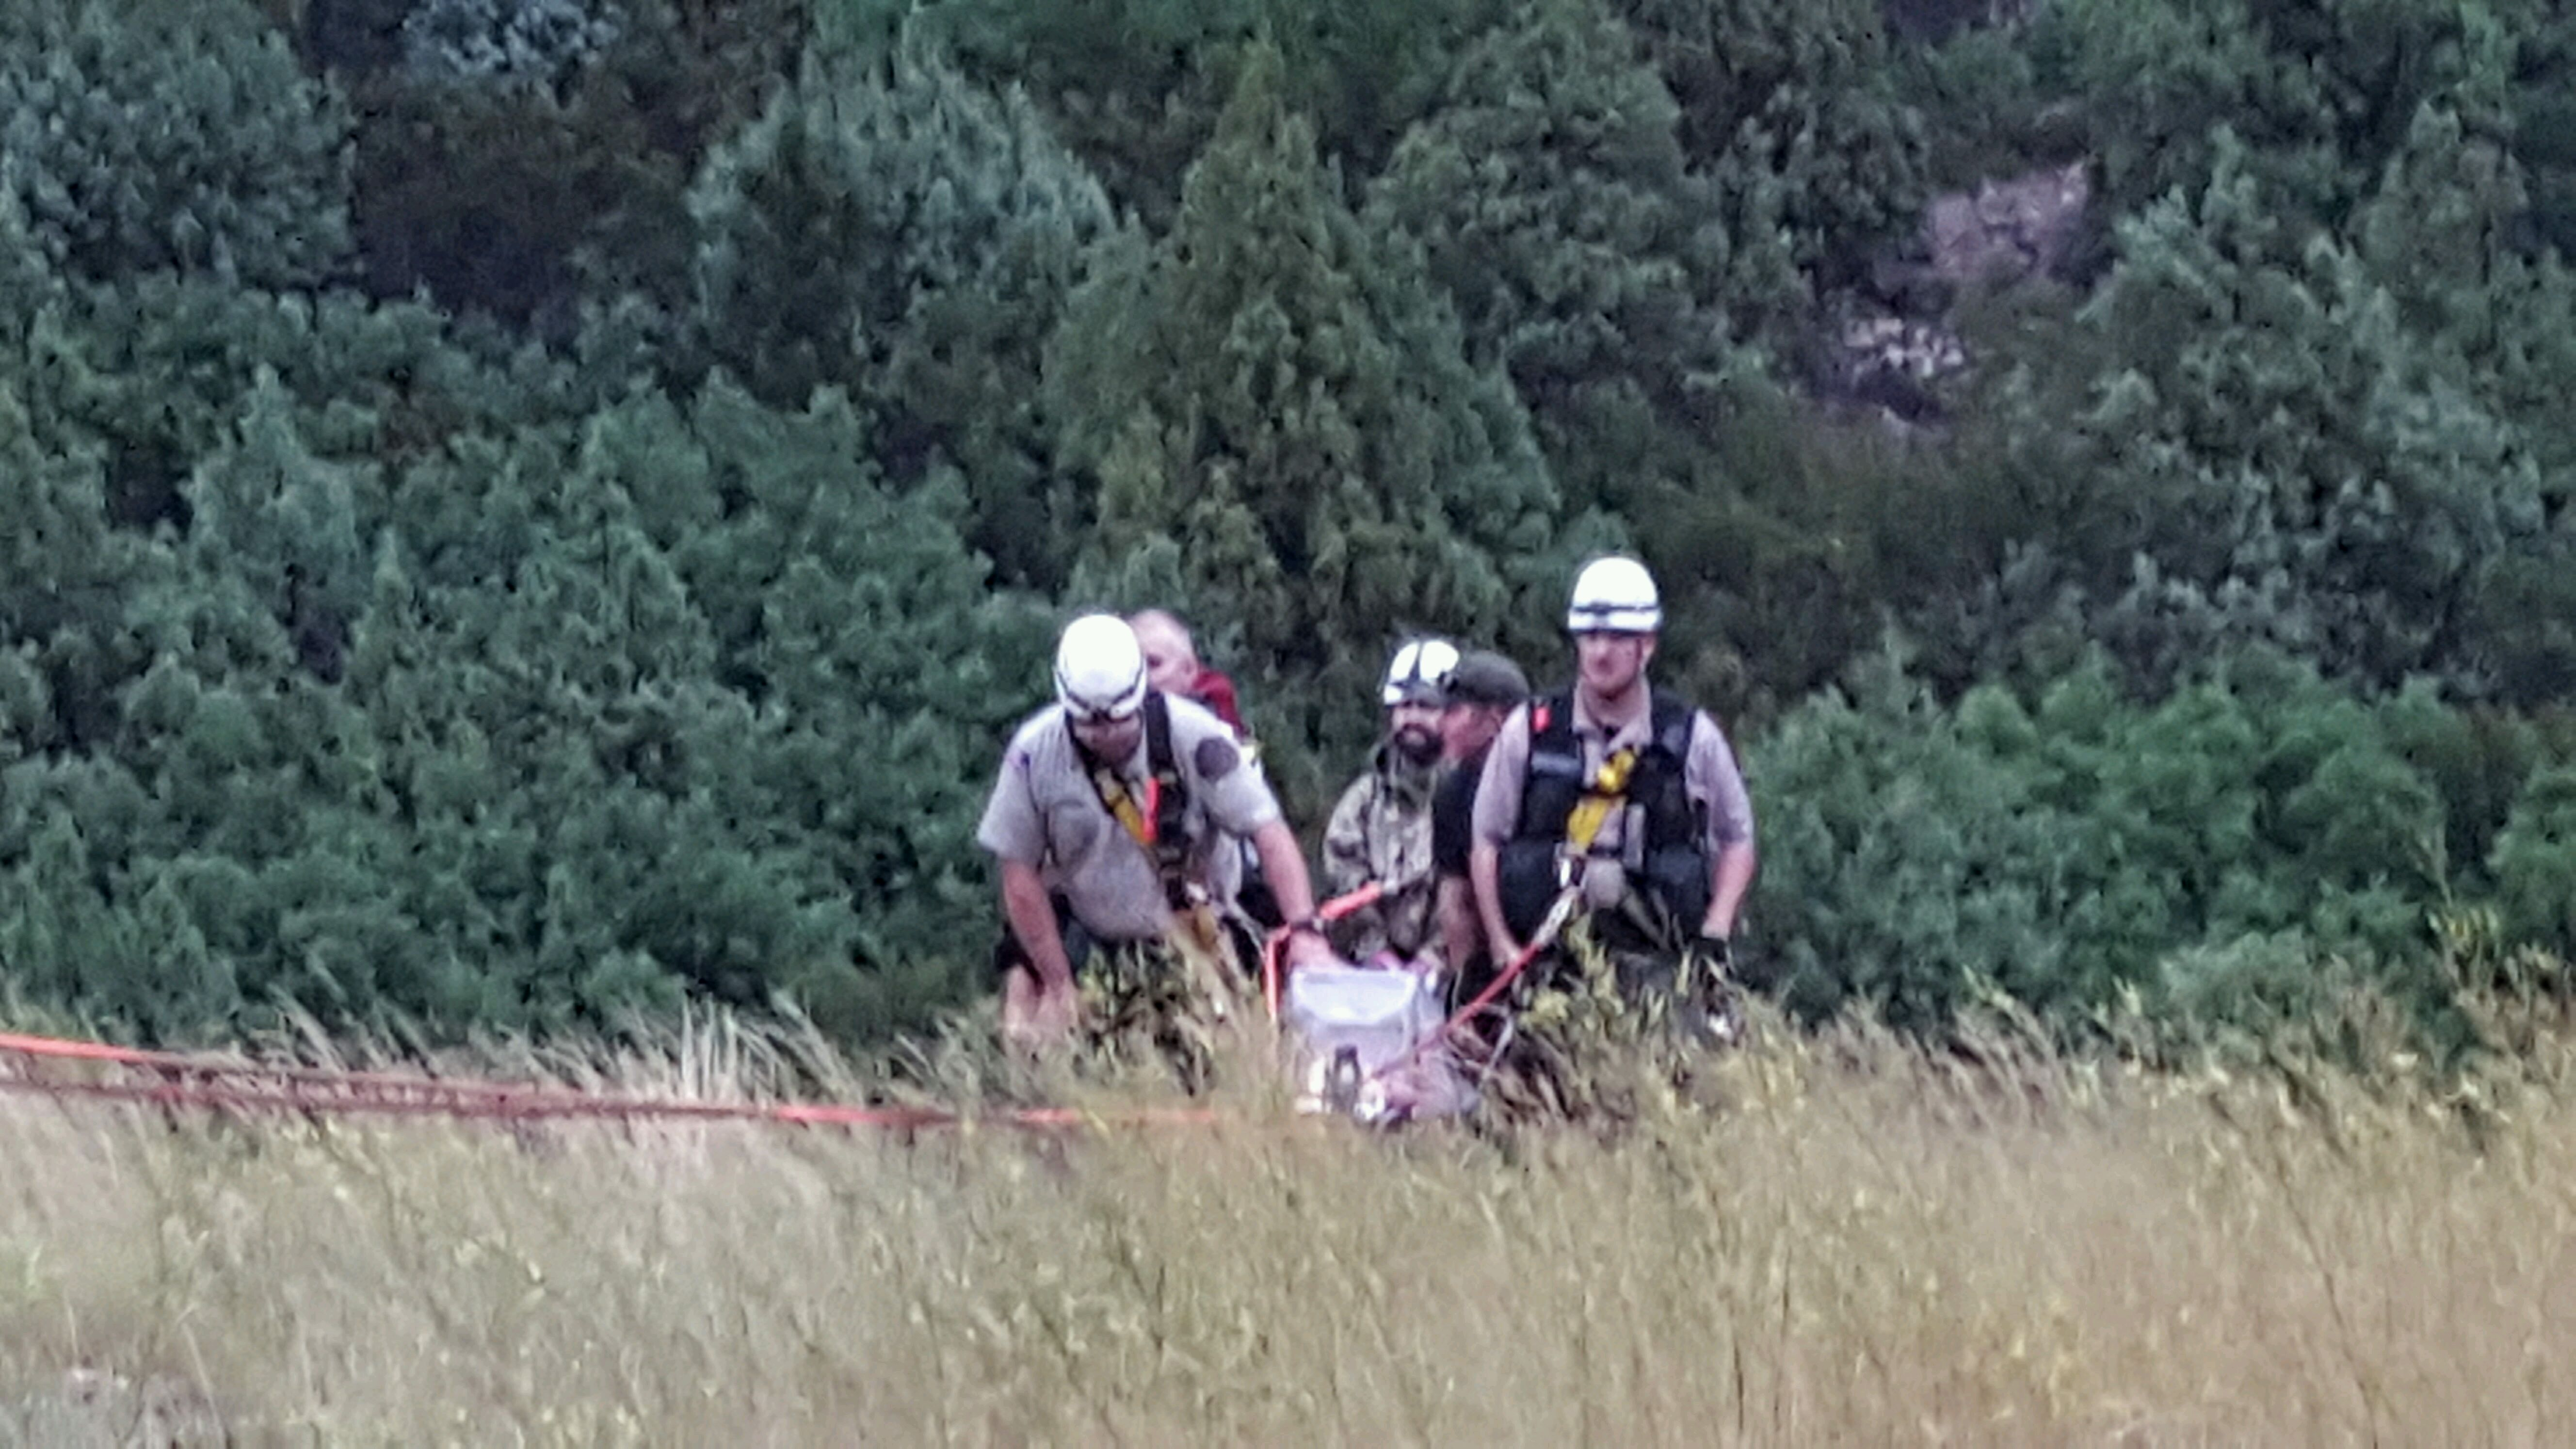 Iron County Sheriff's Ropes Team work to bring hiker to safety Wednesday night. Cedar Canyon, Aug. 3, 2016 | Photo courtesy of Iron County Sheriff's Office, St. George/Cedar City News